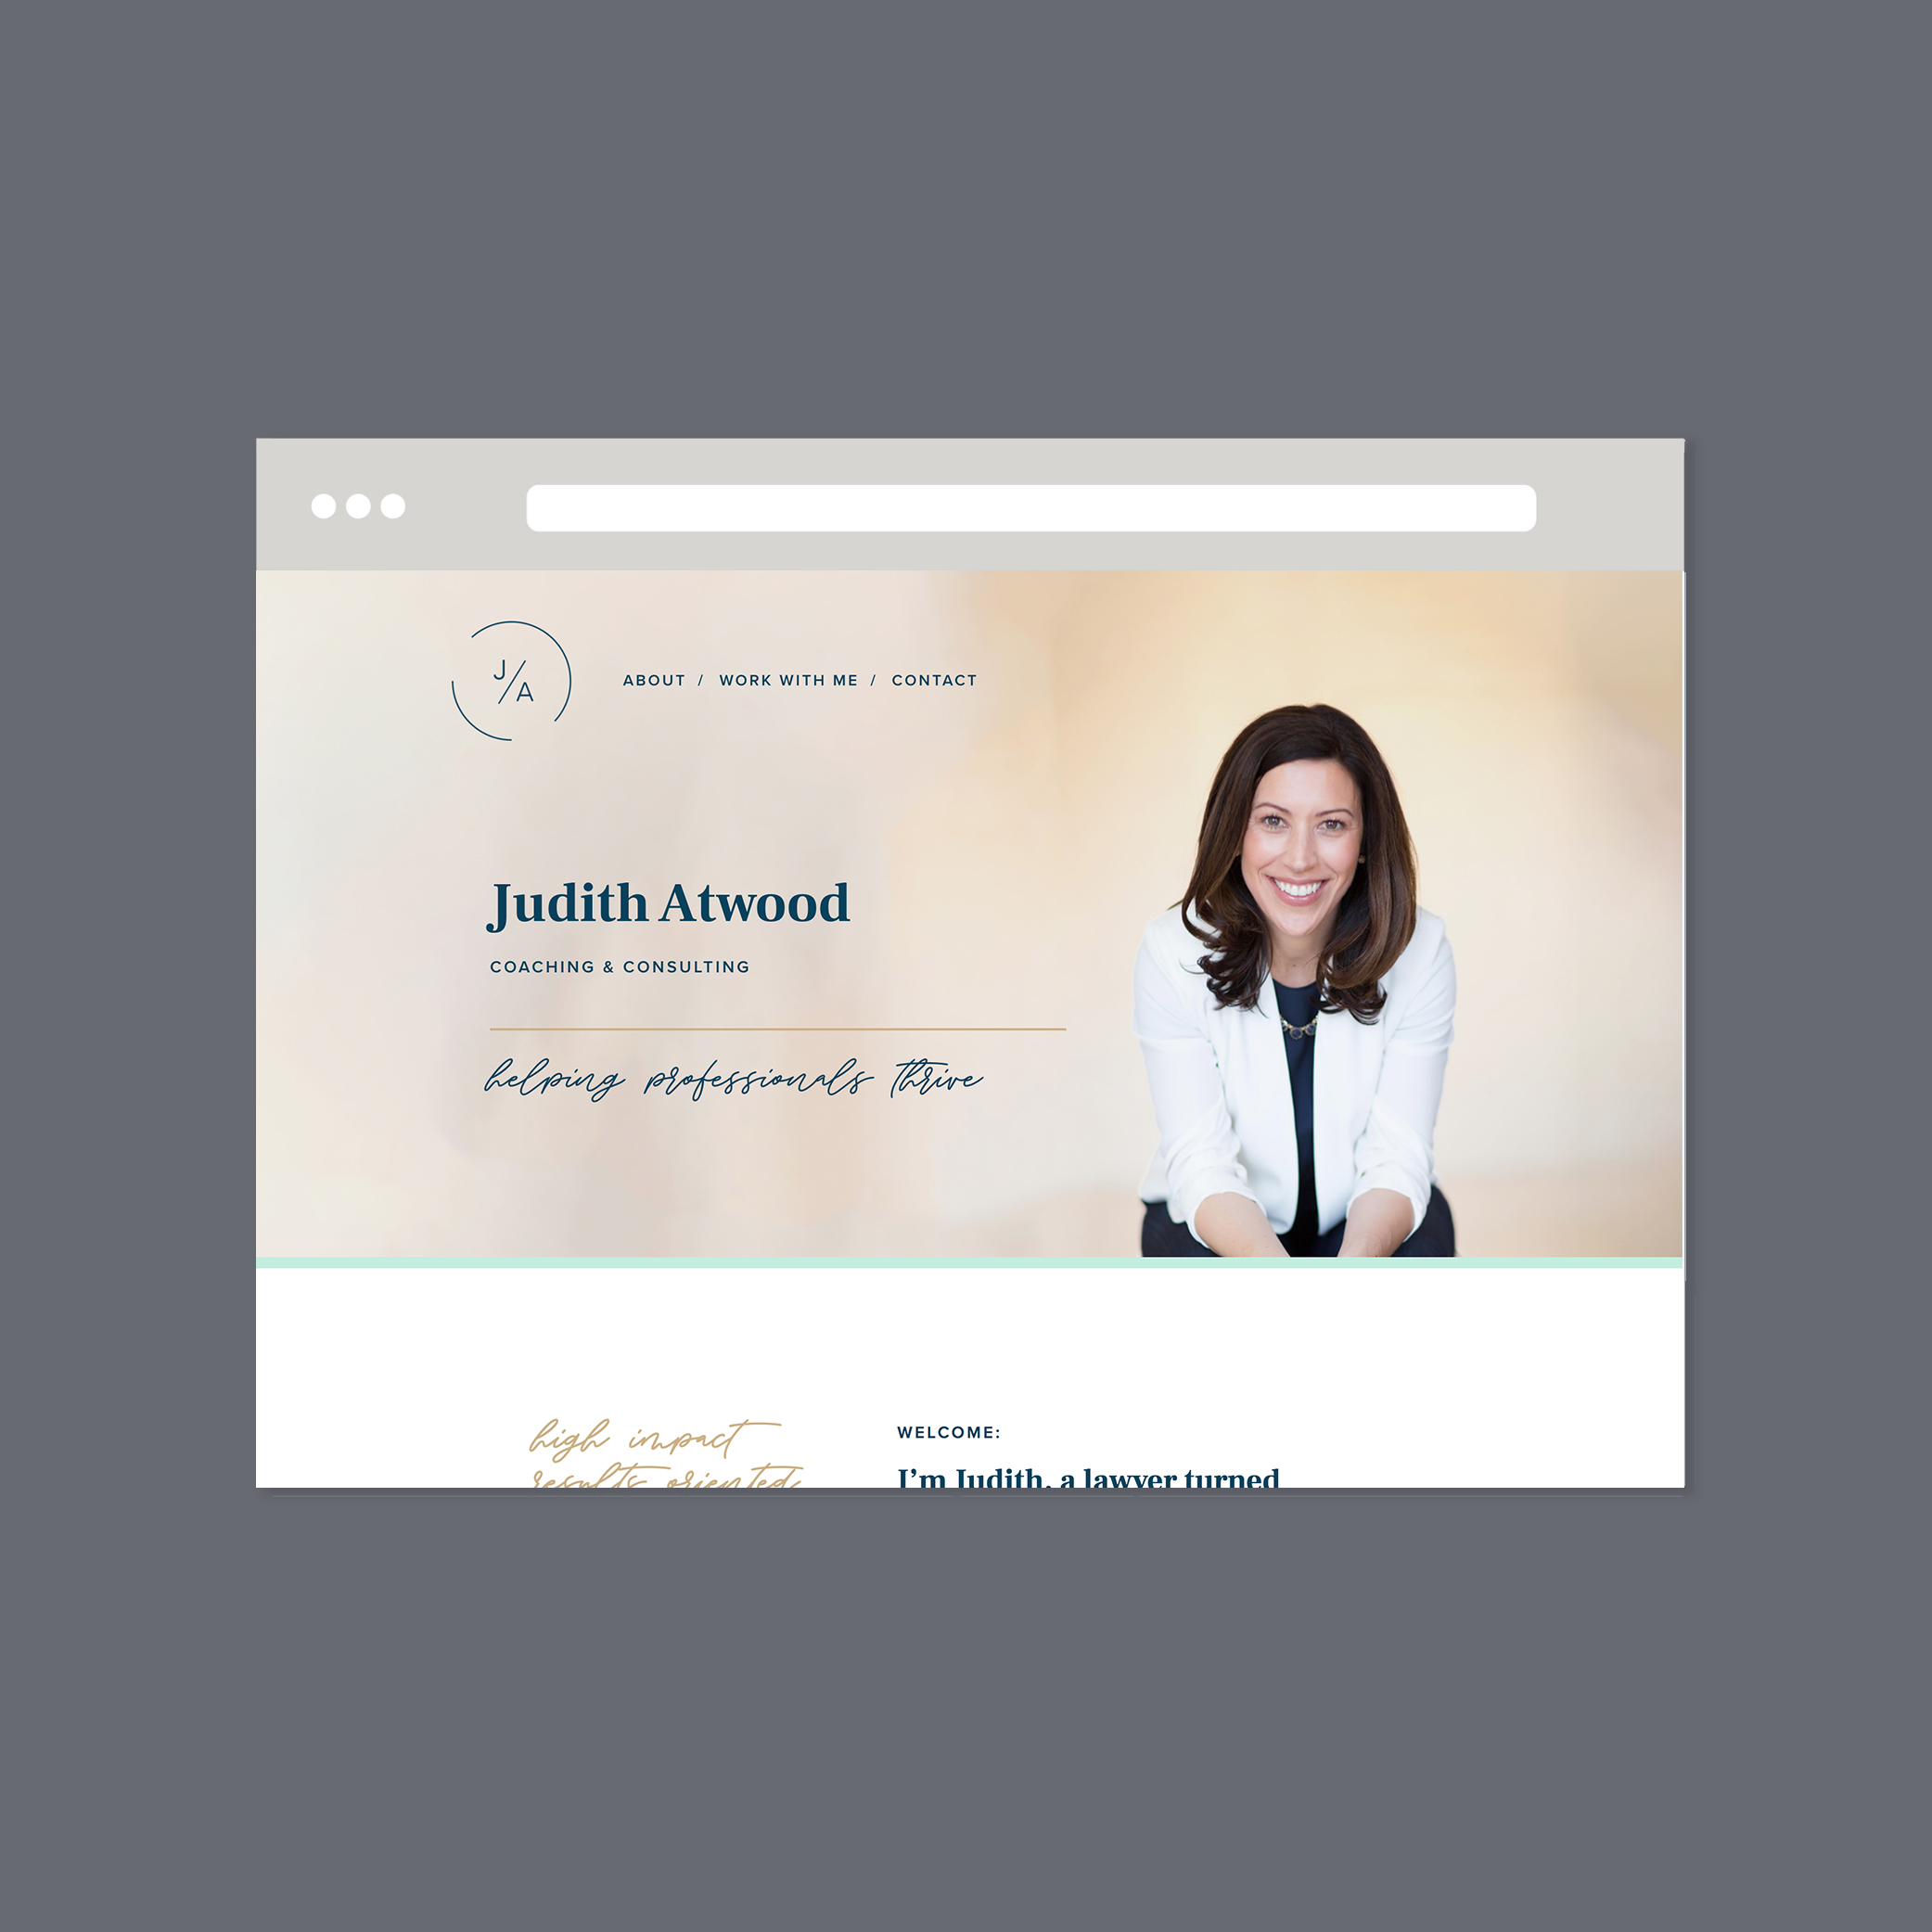 jude-atwood-web-browser-mockup.jpg